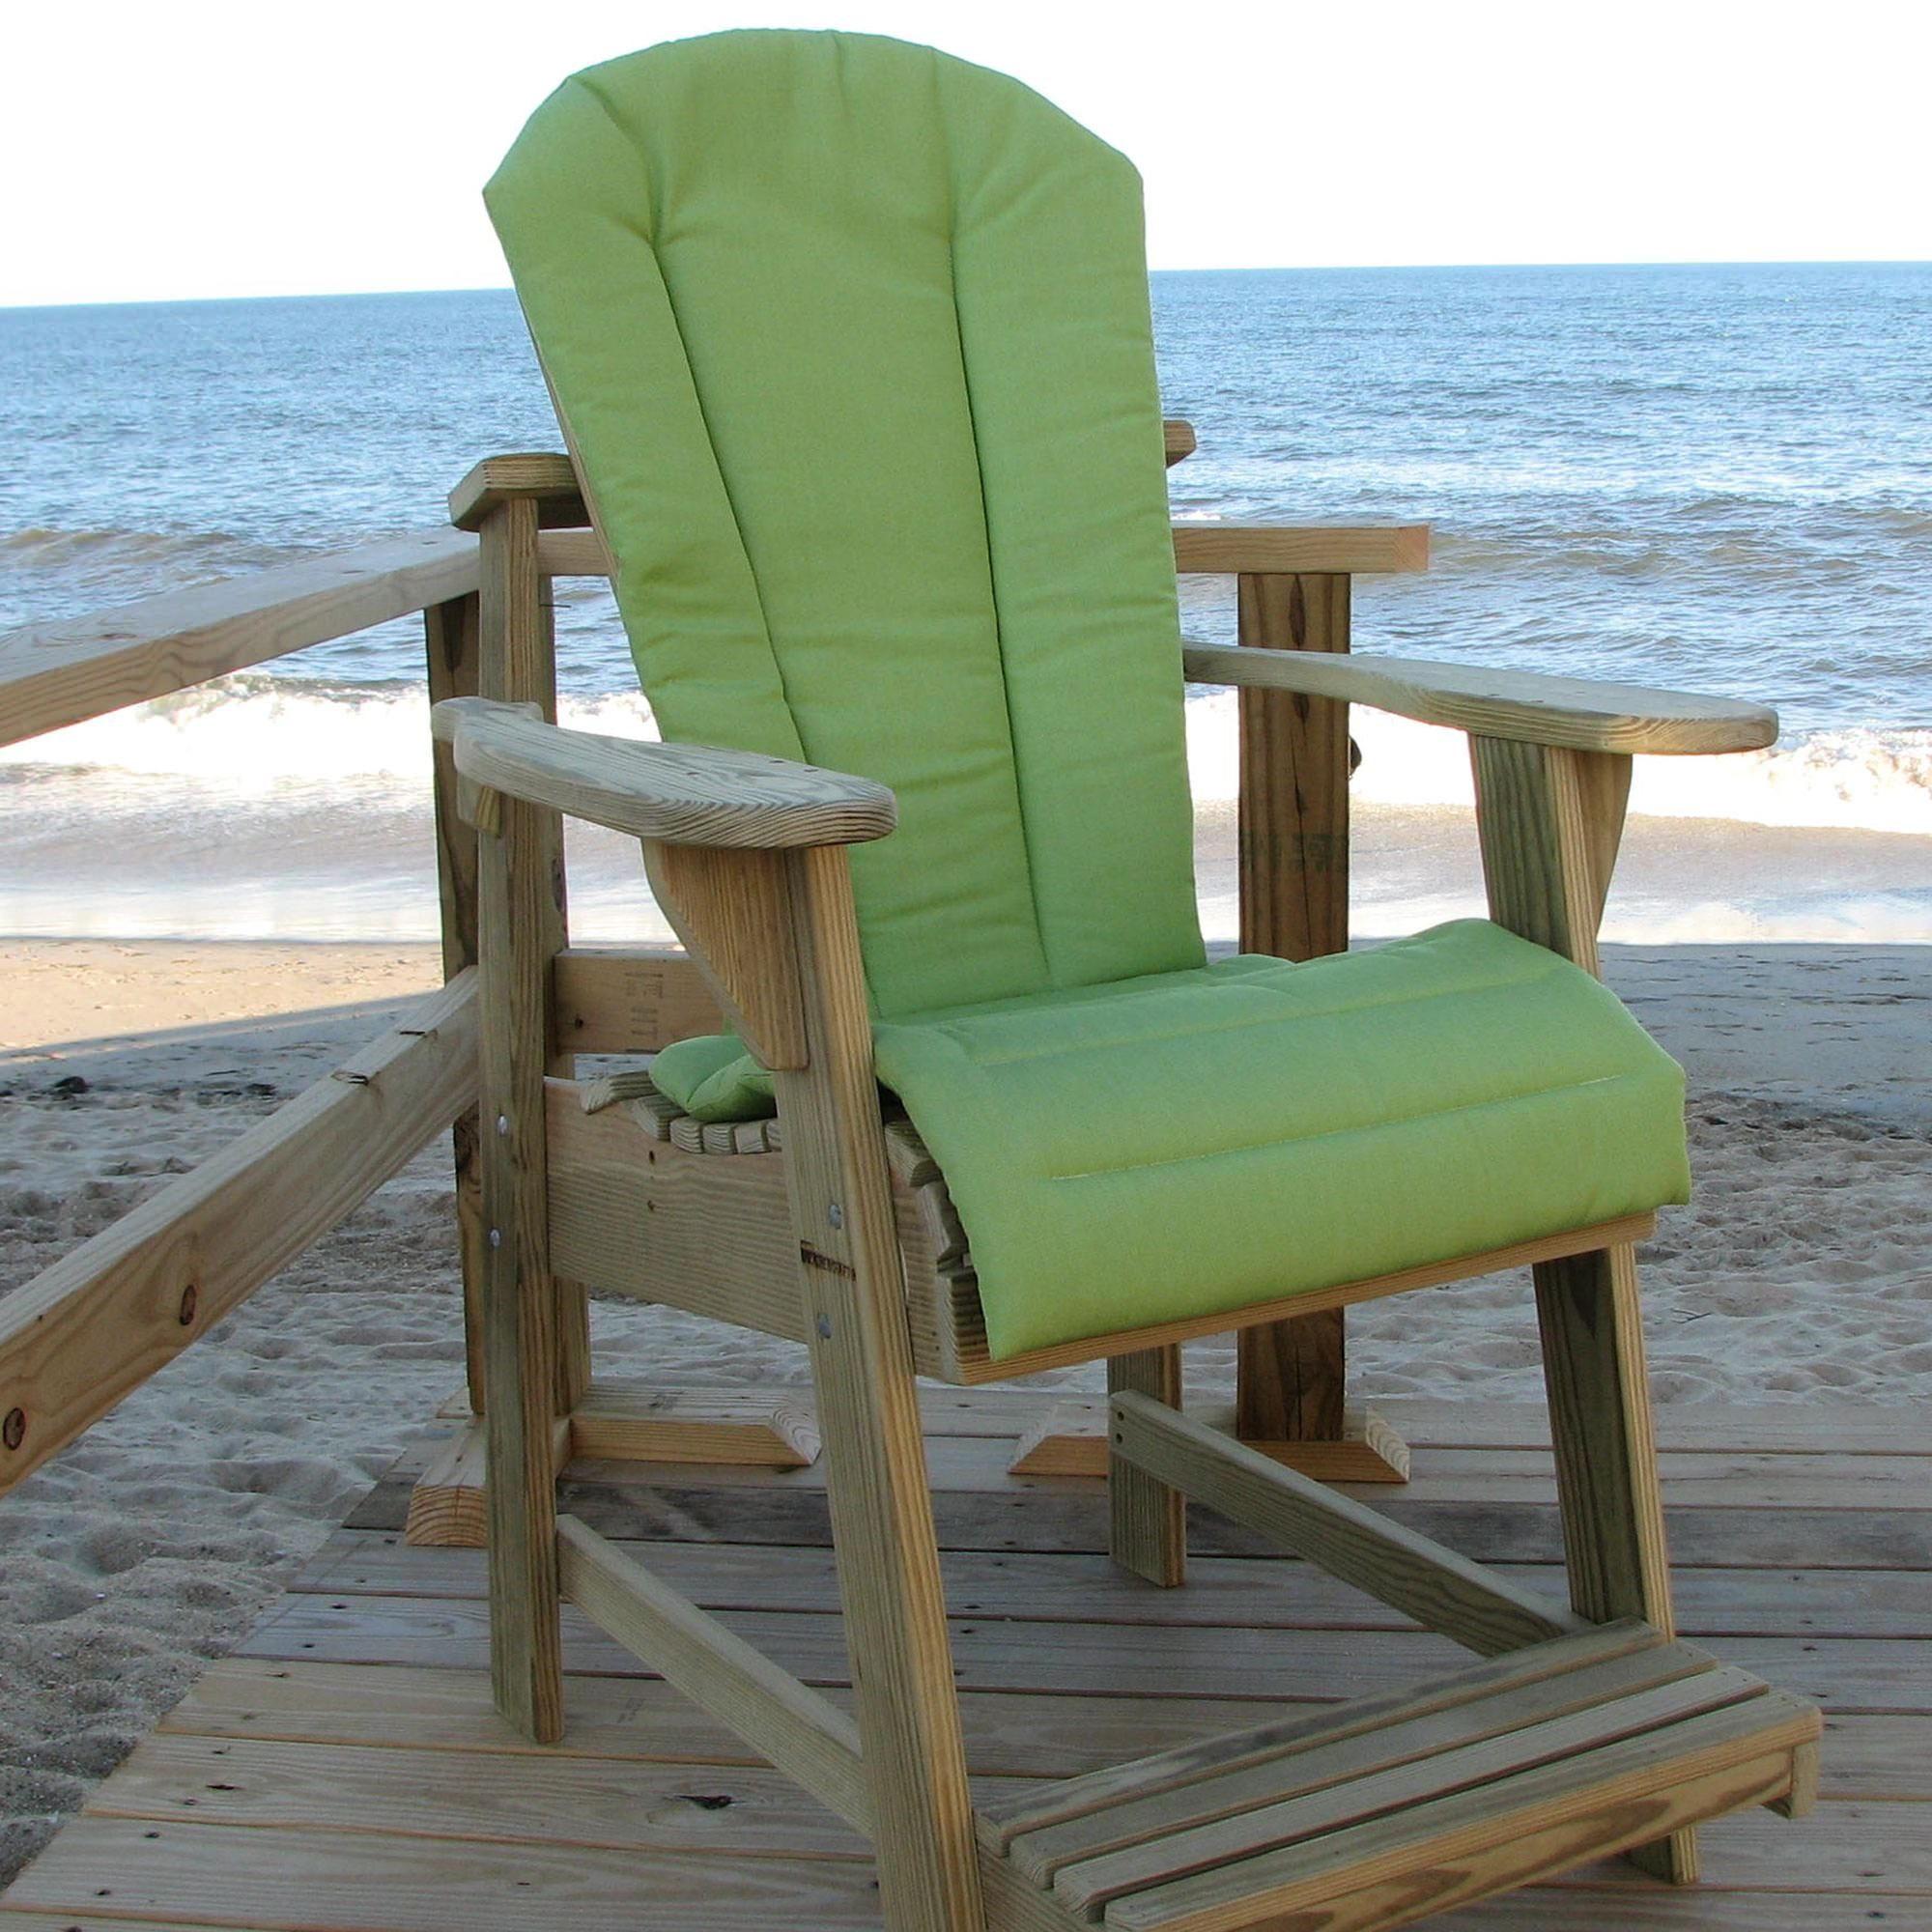 Superieur Adirondack Chair Cushions ... Adirondack Chair Cushion ... Qoogsbm